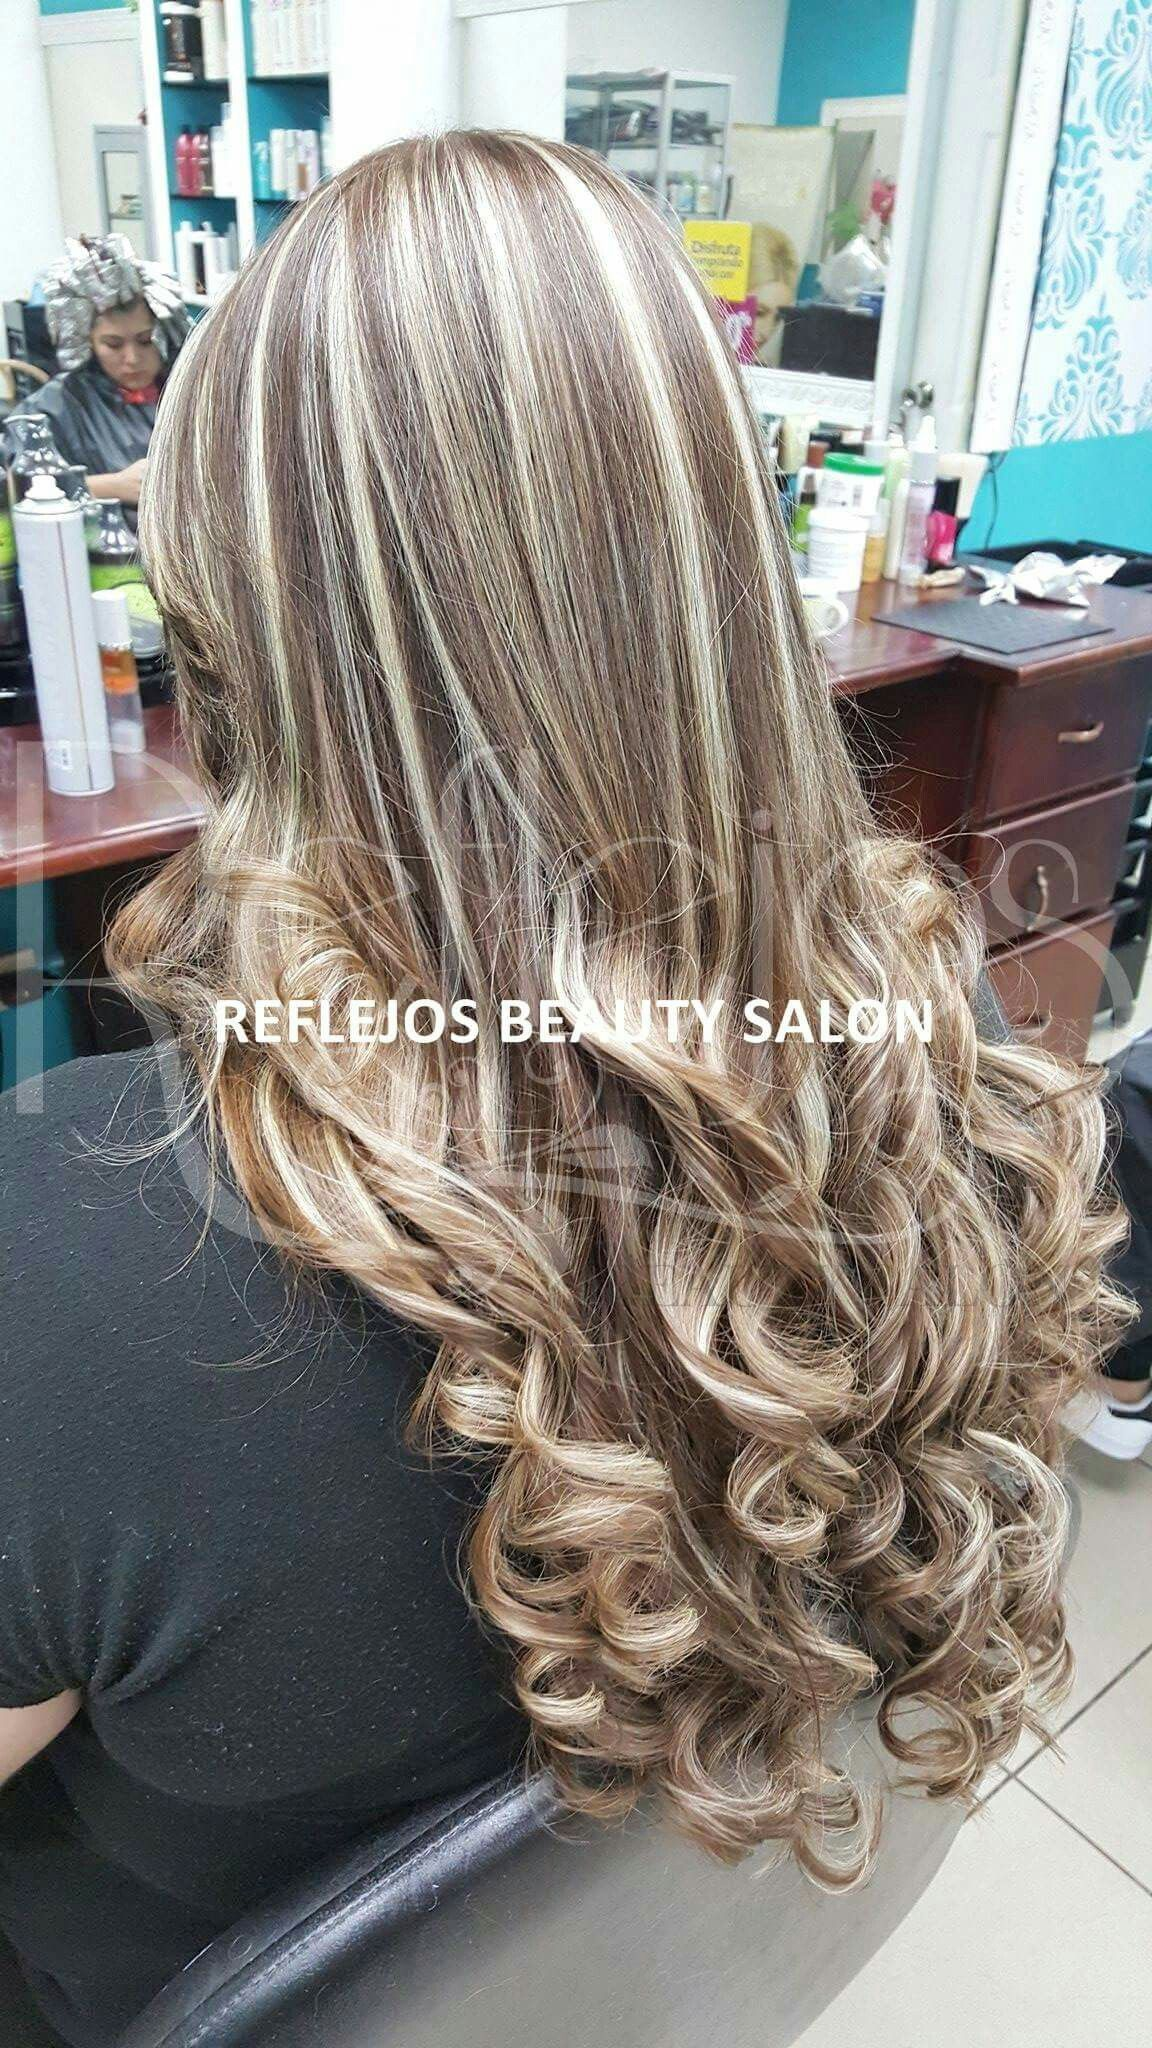 Mechas Beige Sobre Base Rubia In 2019 Hair Curled